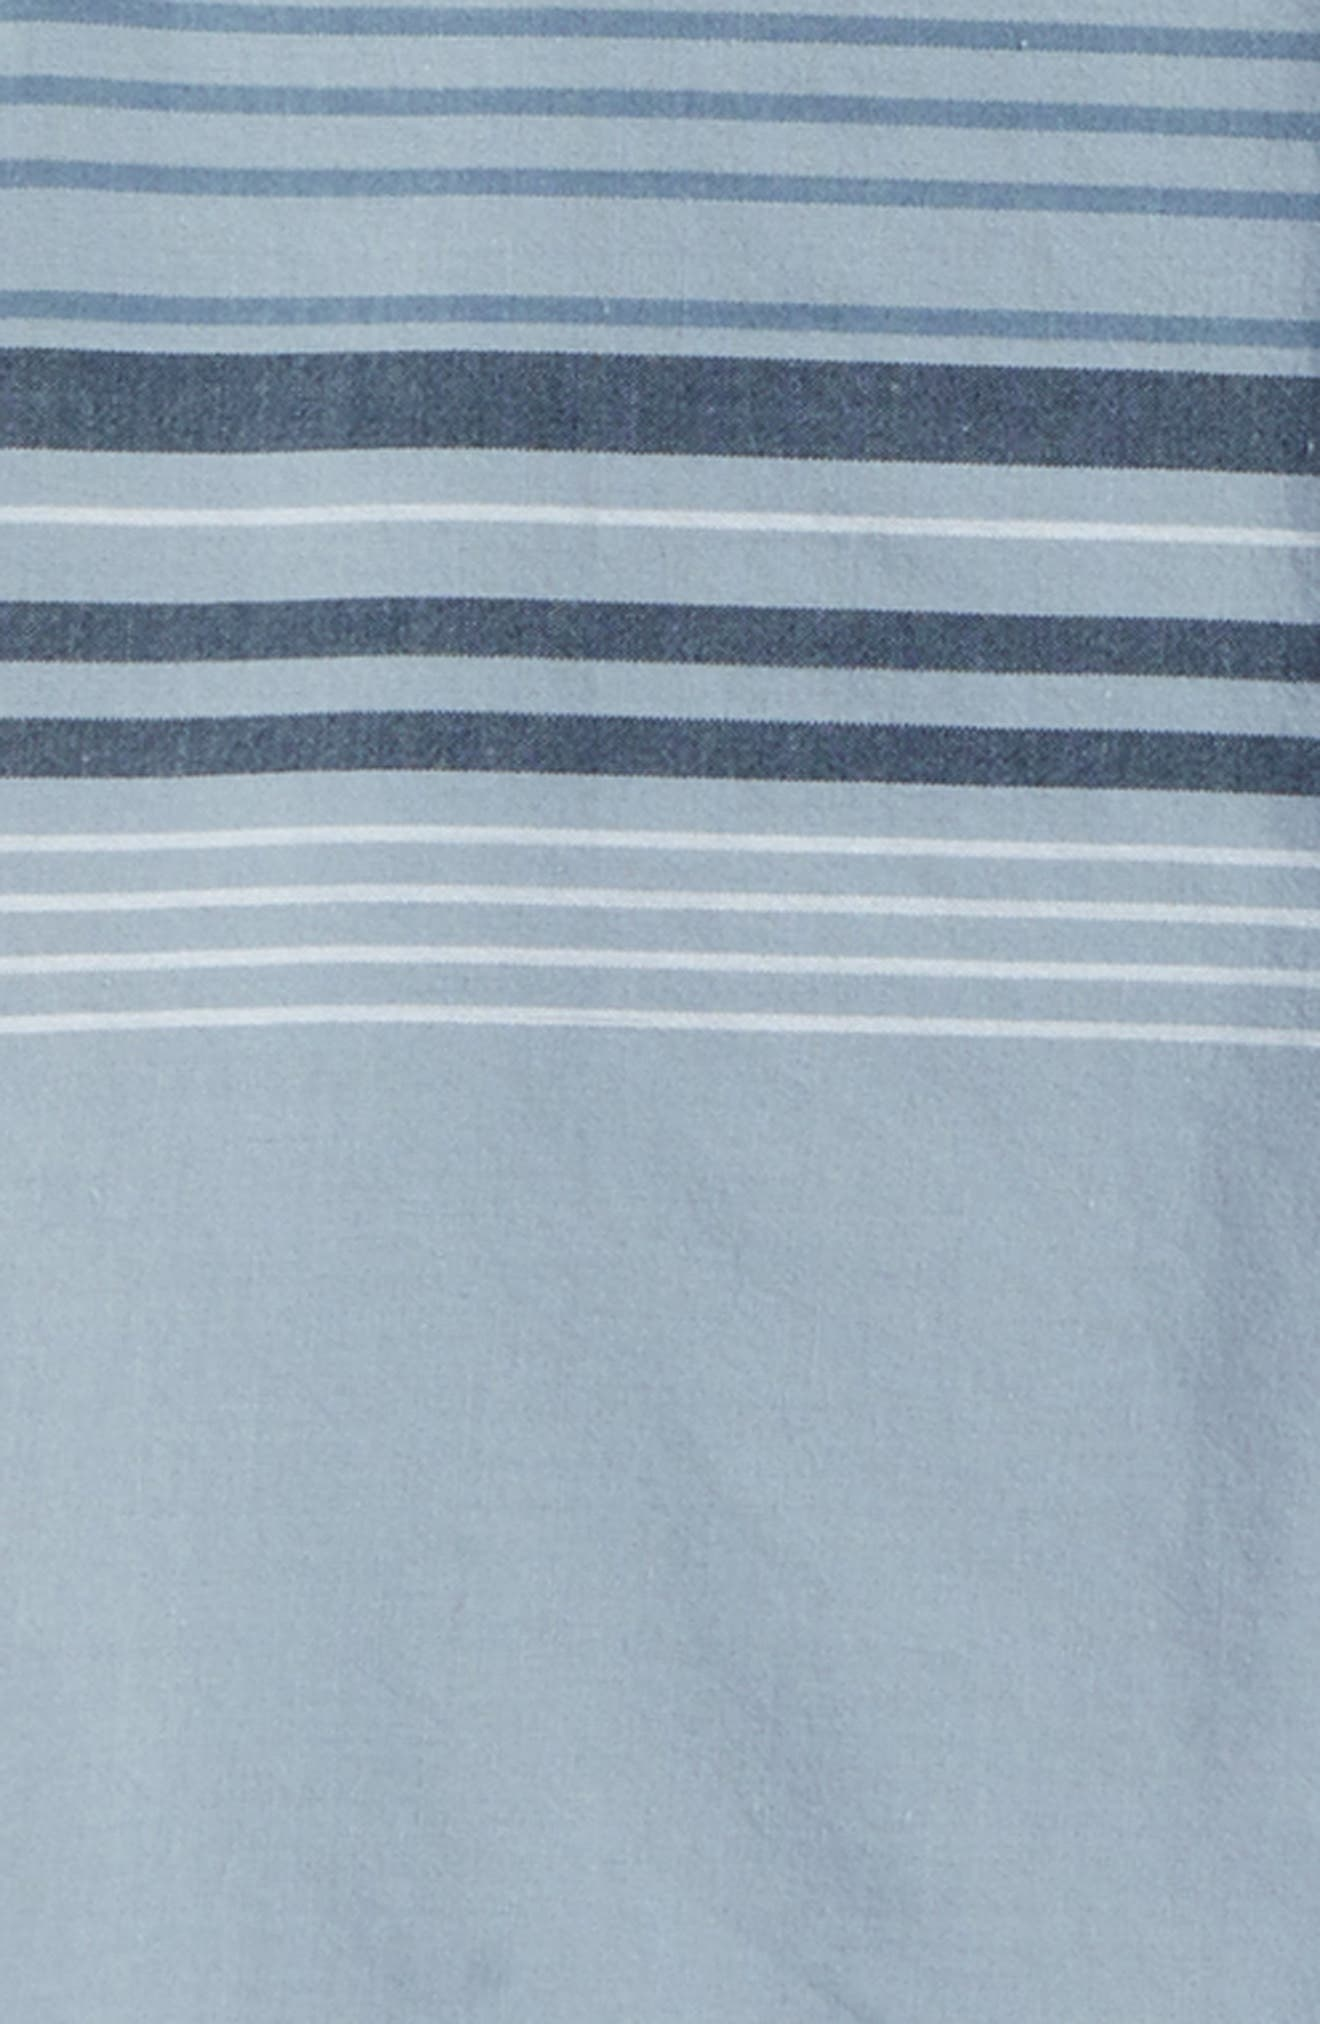 Serf Striped Woven Shirt,                             Alternate thumbnail 6, color,